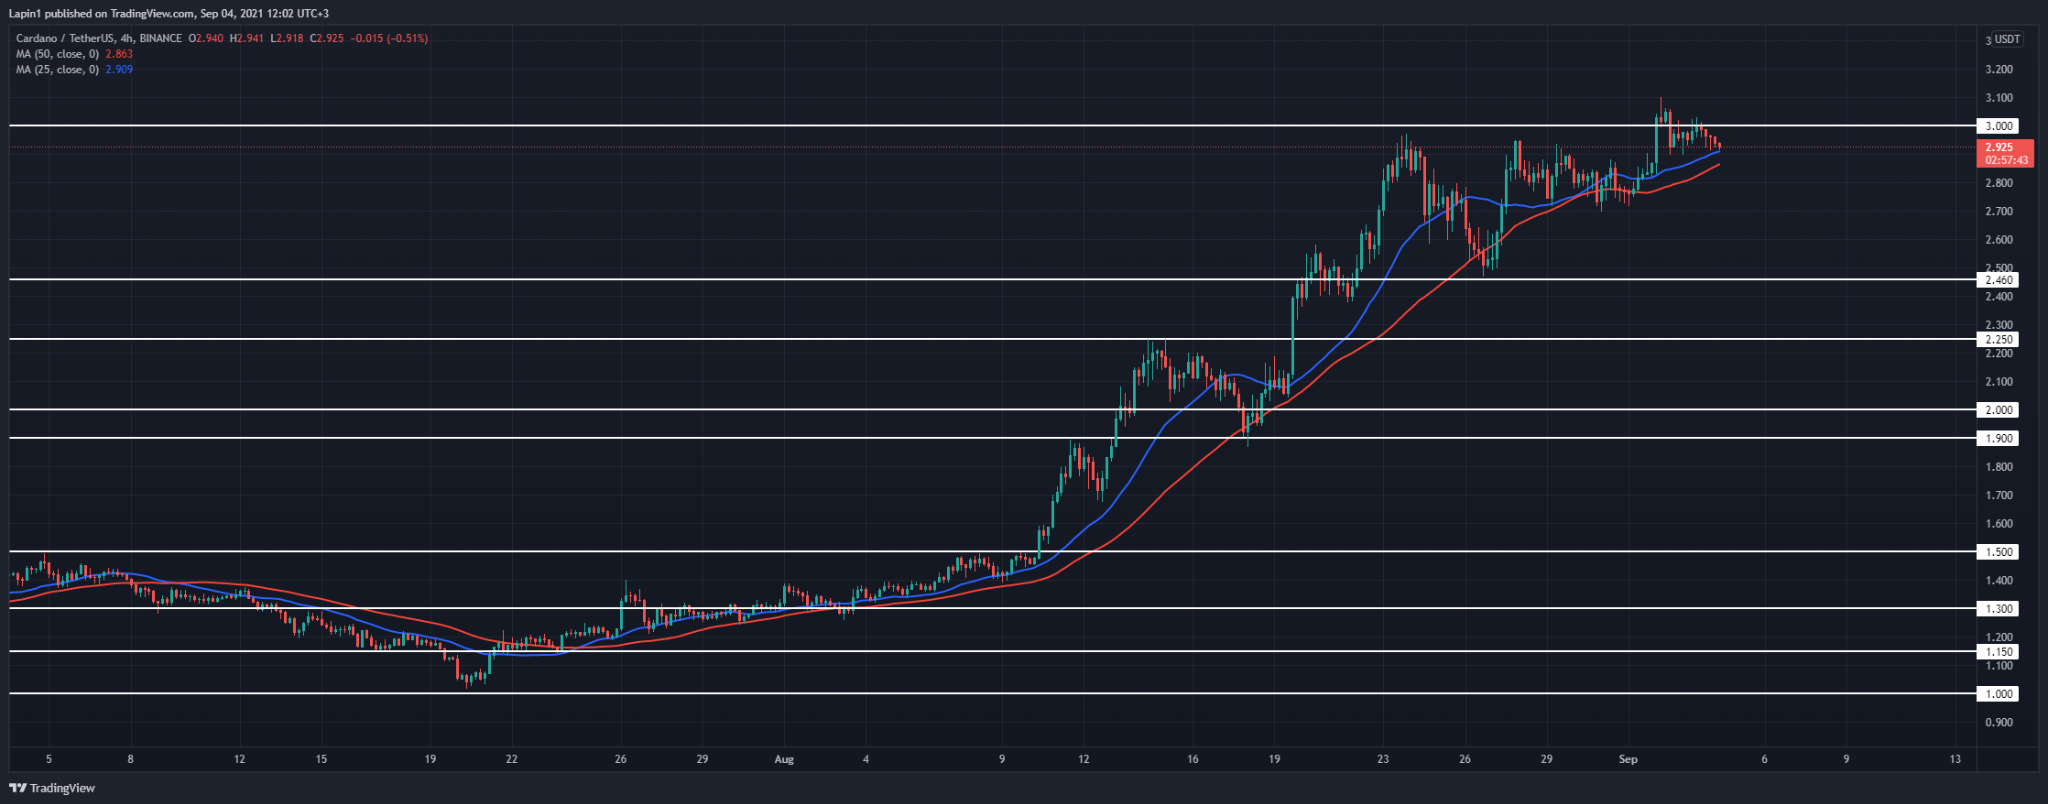 Cardano Price Analysis: ADA briefly moves above $3, set for a retracement today?